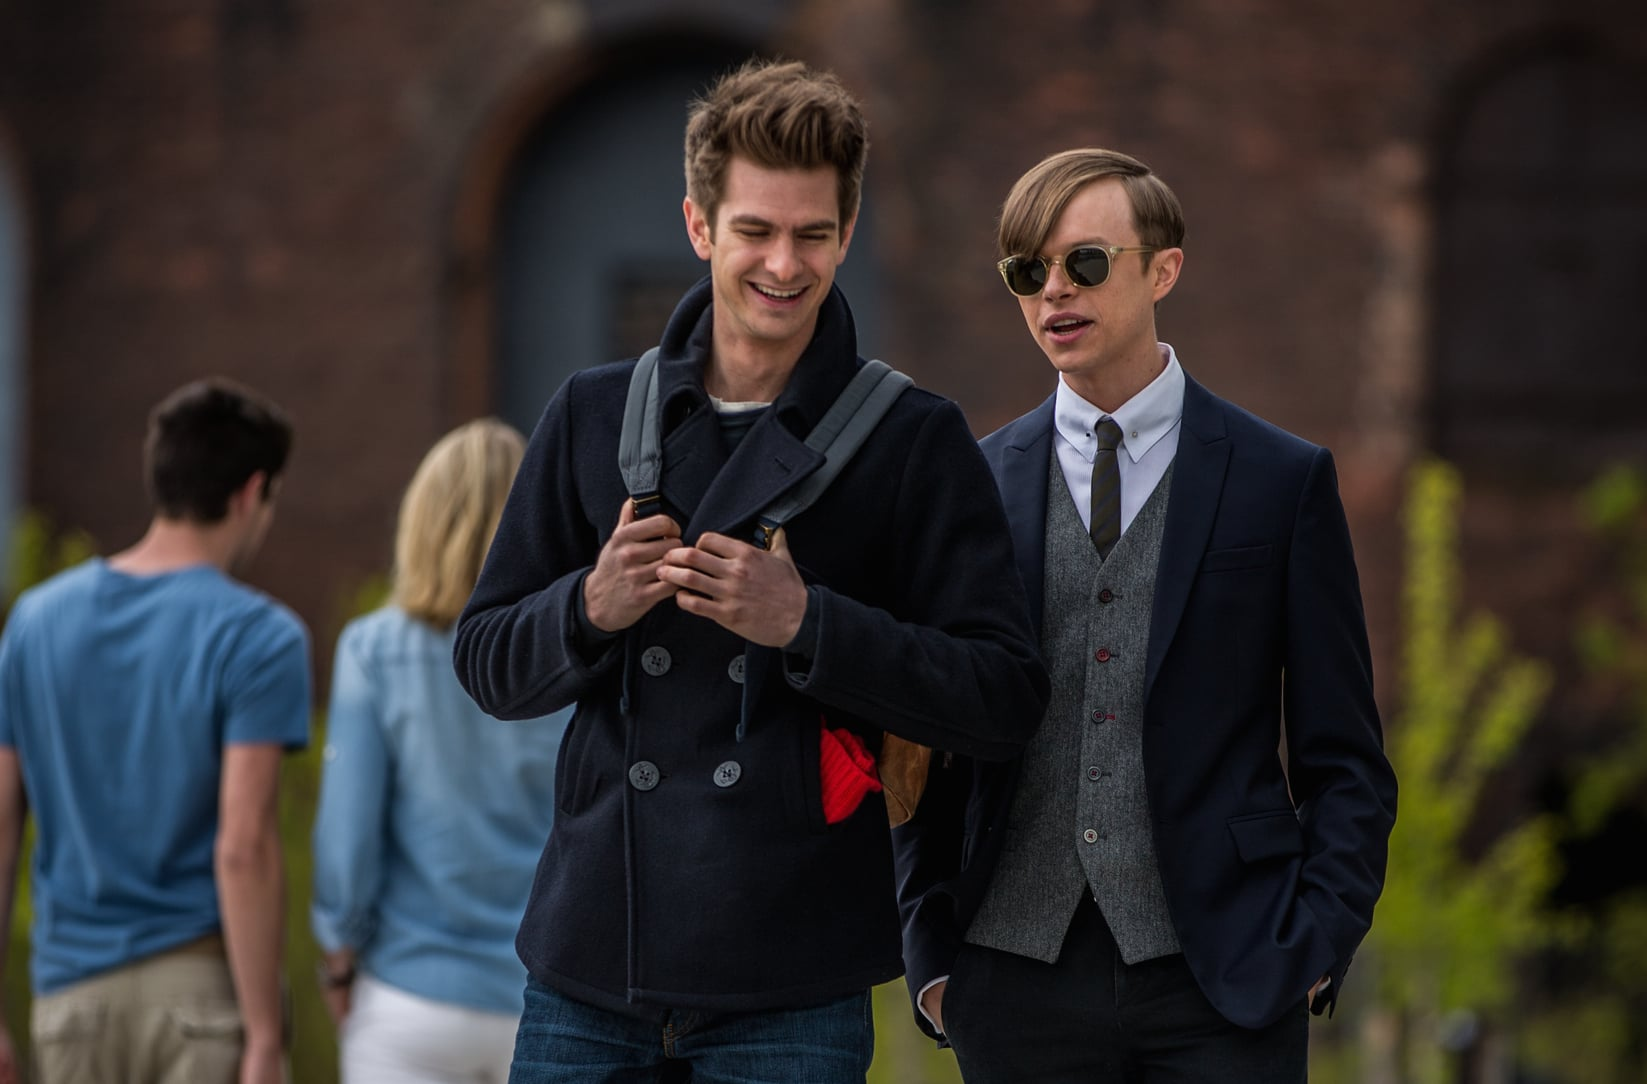 Andrew Garfield and Dane DeHaan in The Amazing Spider-Man 2 | The Sexiest Pictures of Your Summer Movie Crushes | POPSUGAR Entertainment Photo 14